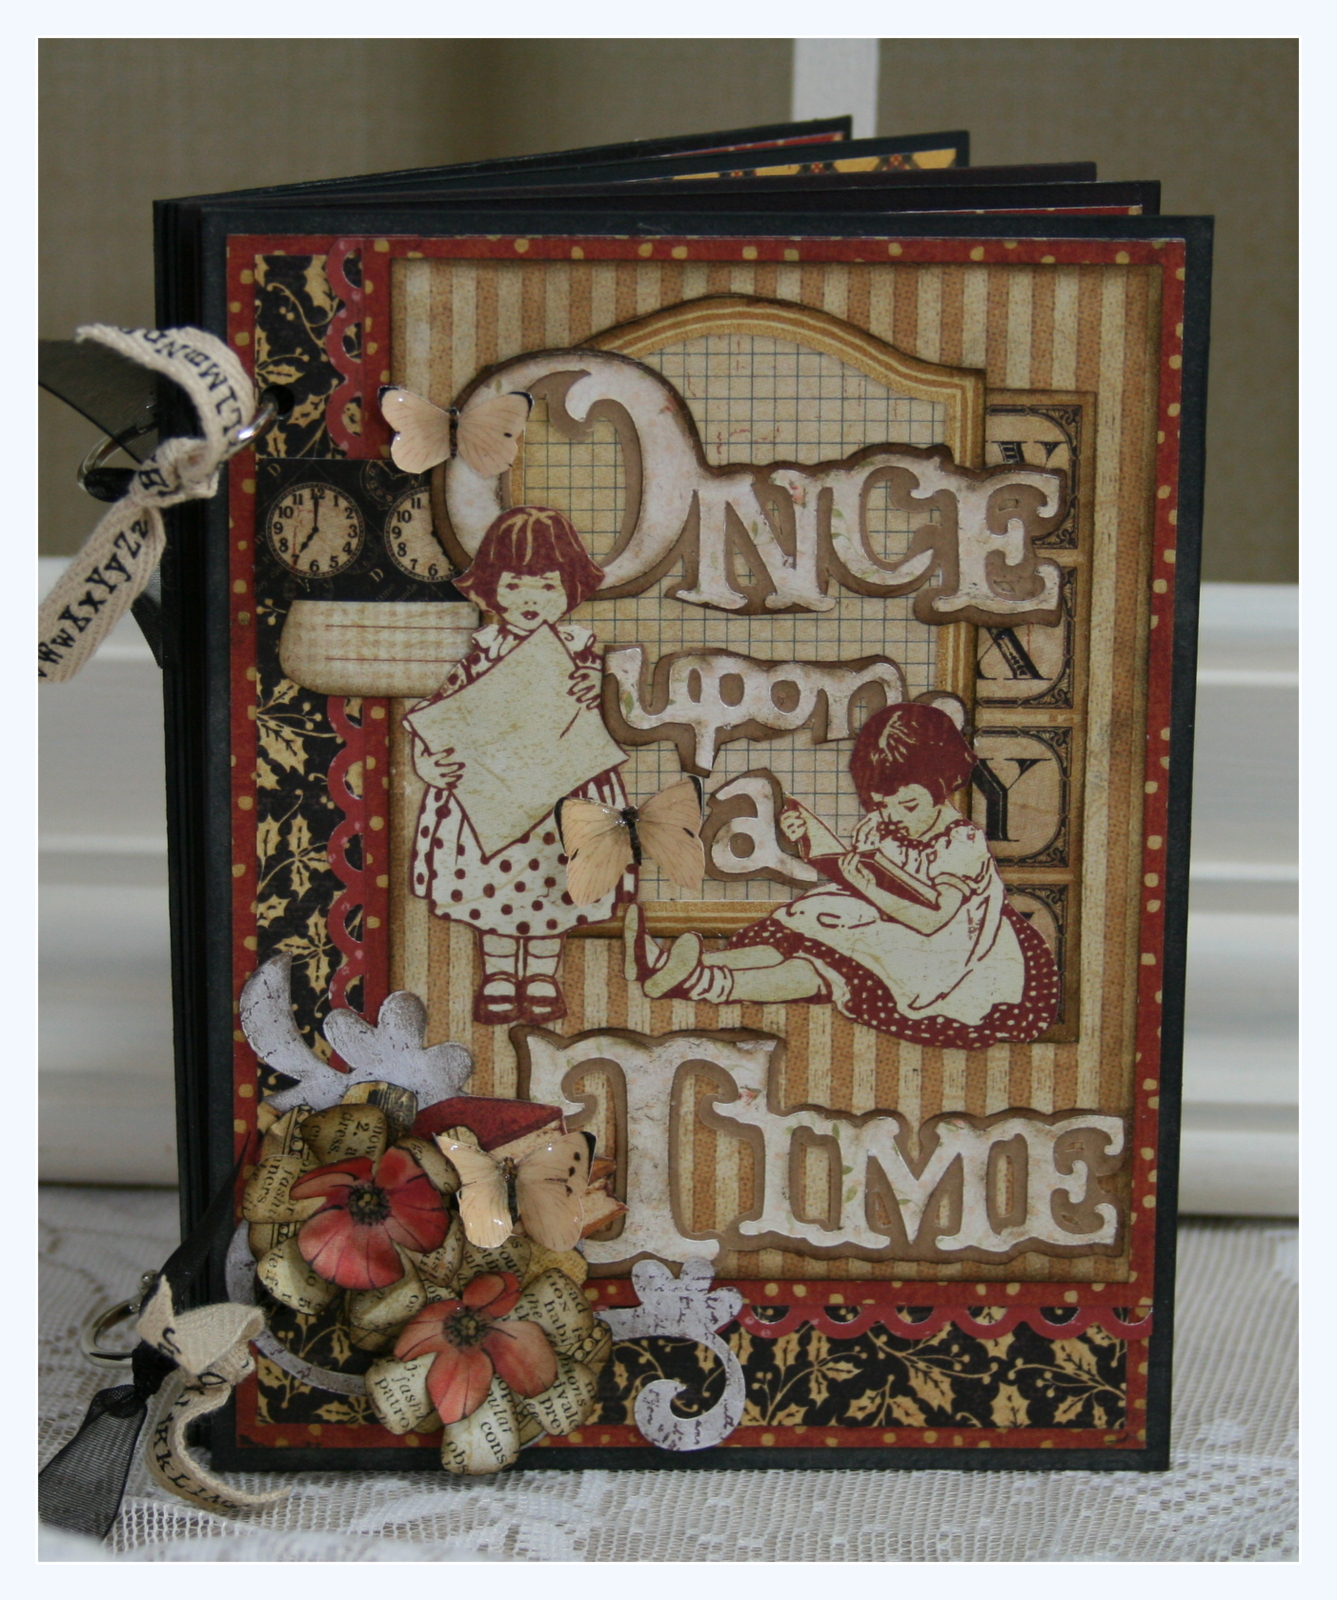 Scrapbook ideas abc album - This Sweet Little Mini Album Is Actually A Calendar Created With Abc Primer The Sweet Little Butterflies Are Graphic Fairy